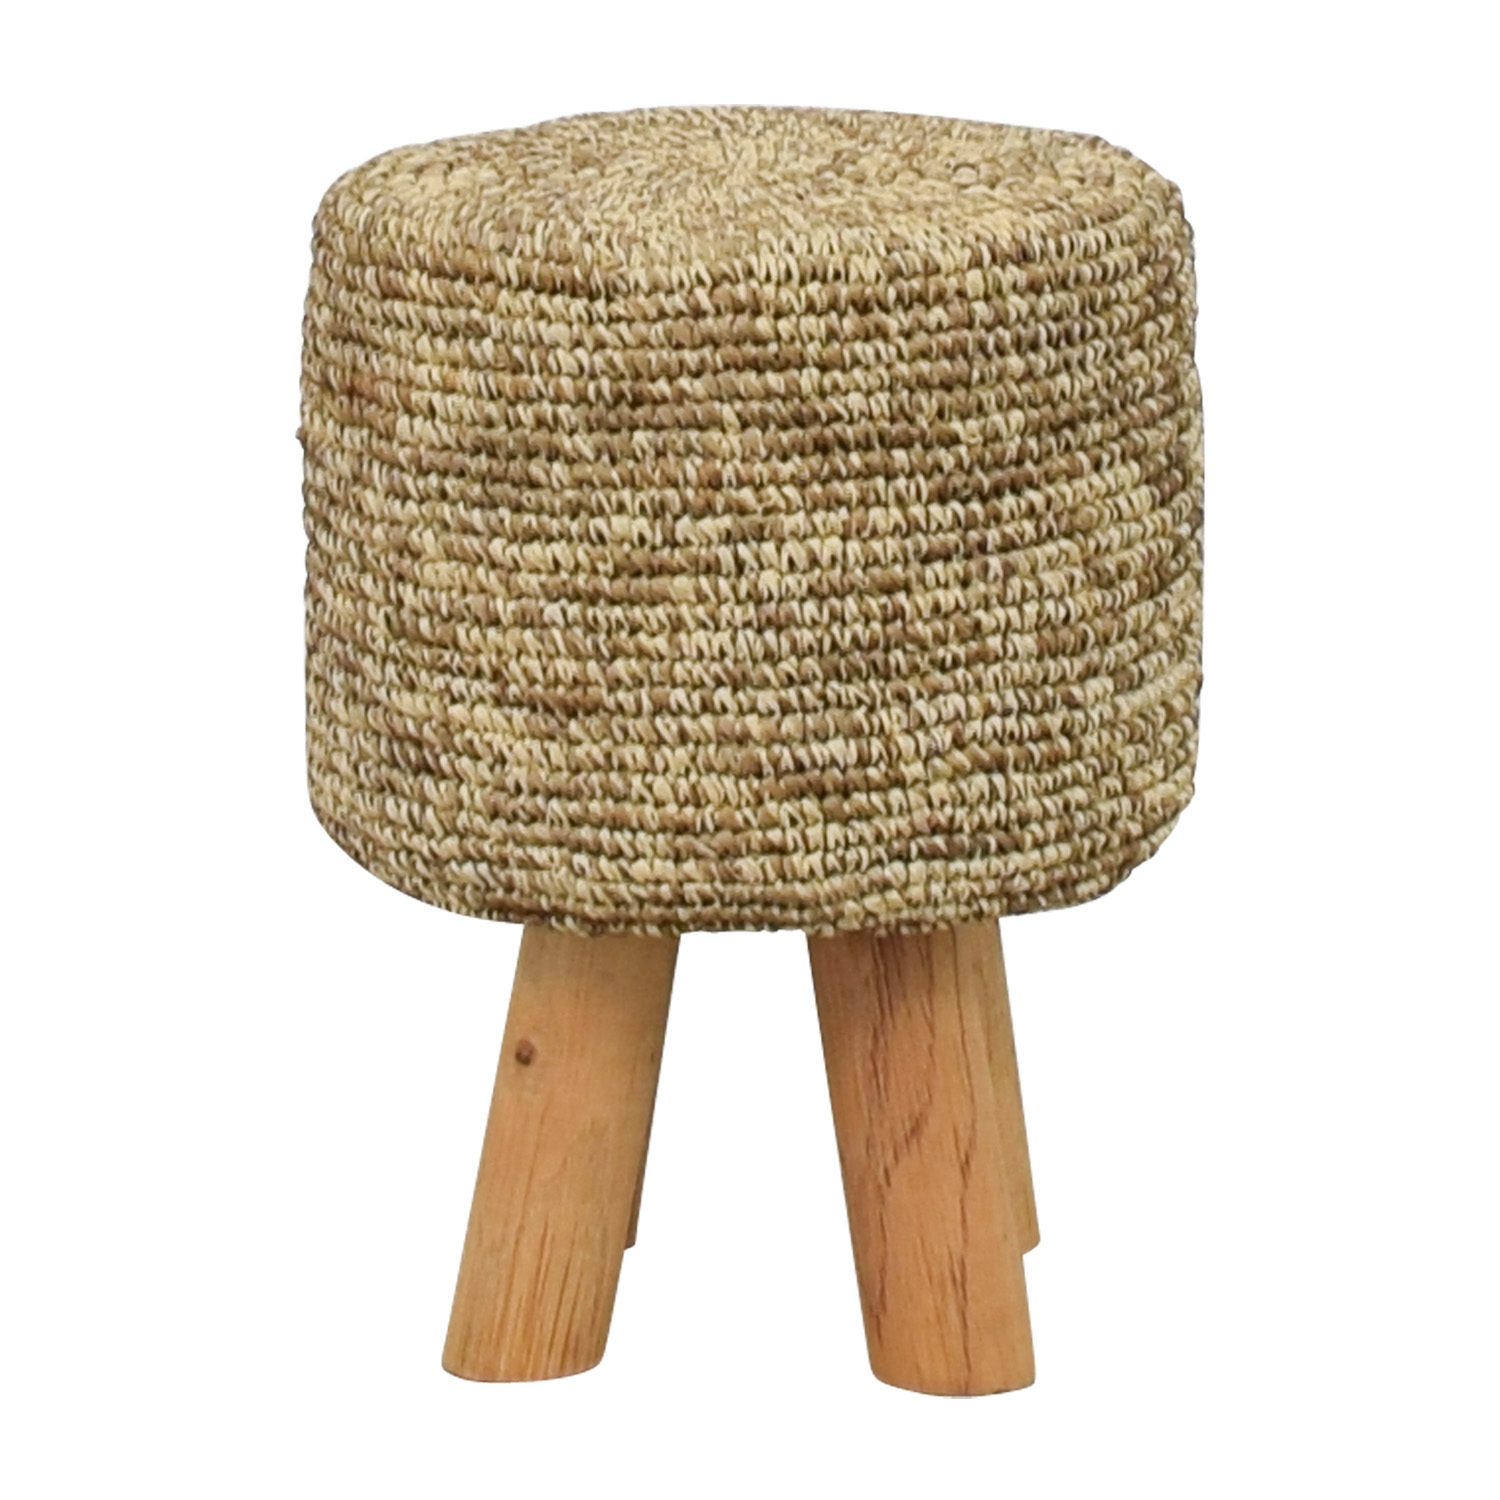 Astonishing 50 Off Wool And Wood Short Stool Tables Pdpeps Interior Chair Design Pdpepsorg